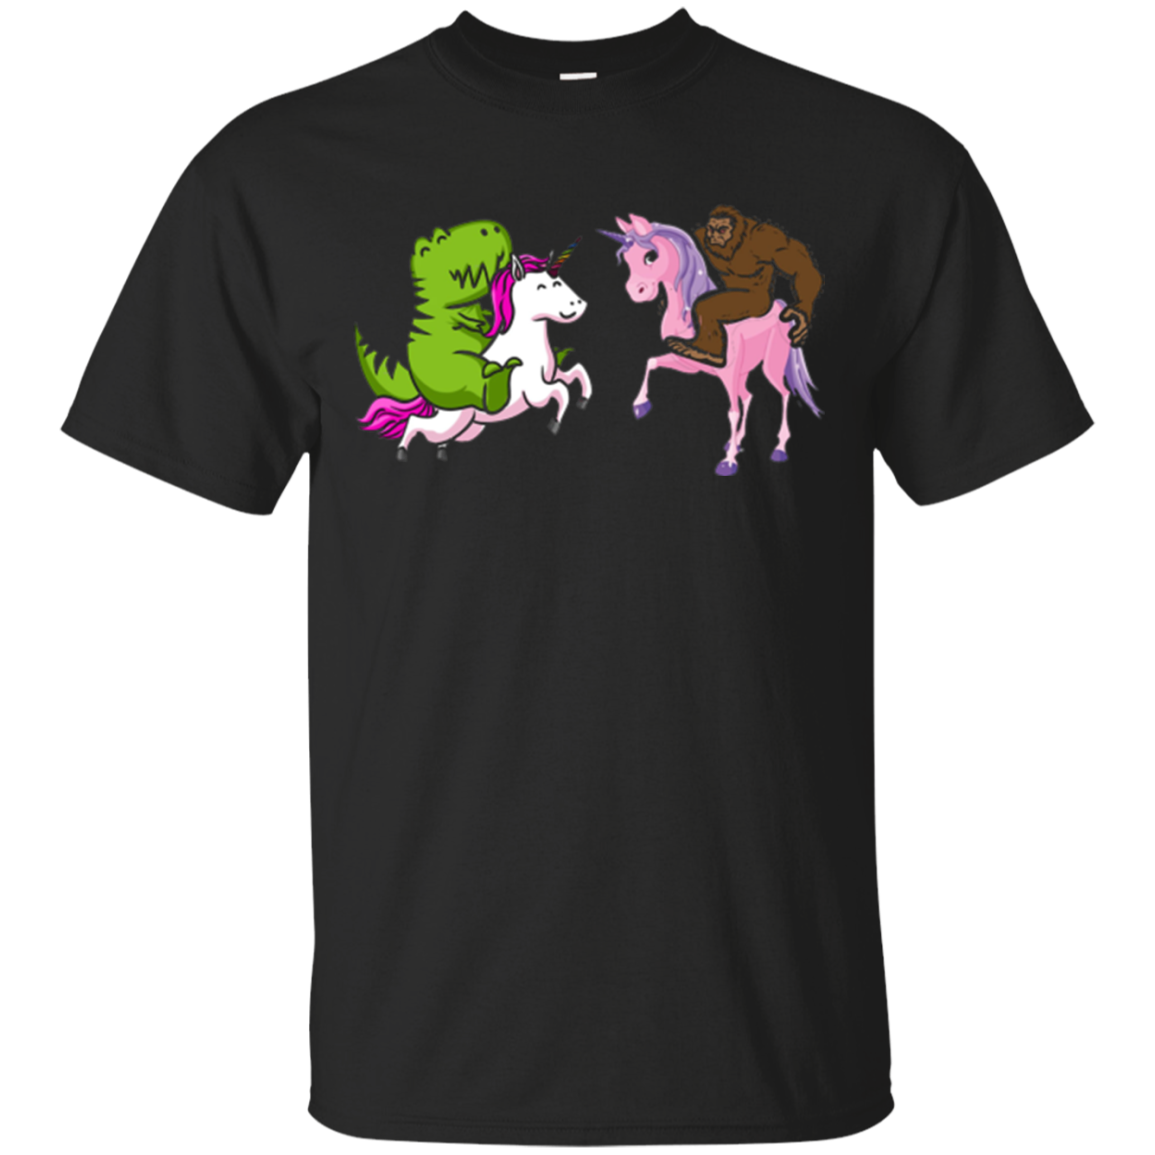 Dinosaur Riding Unicorn vs Bigfoot Riding Unicorn T-Shirt